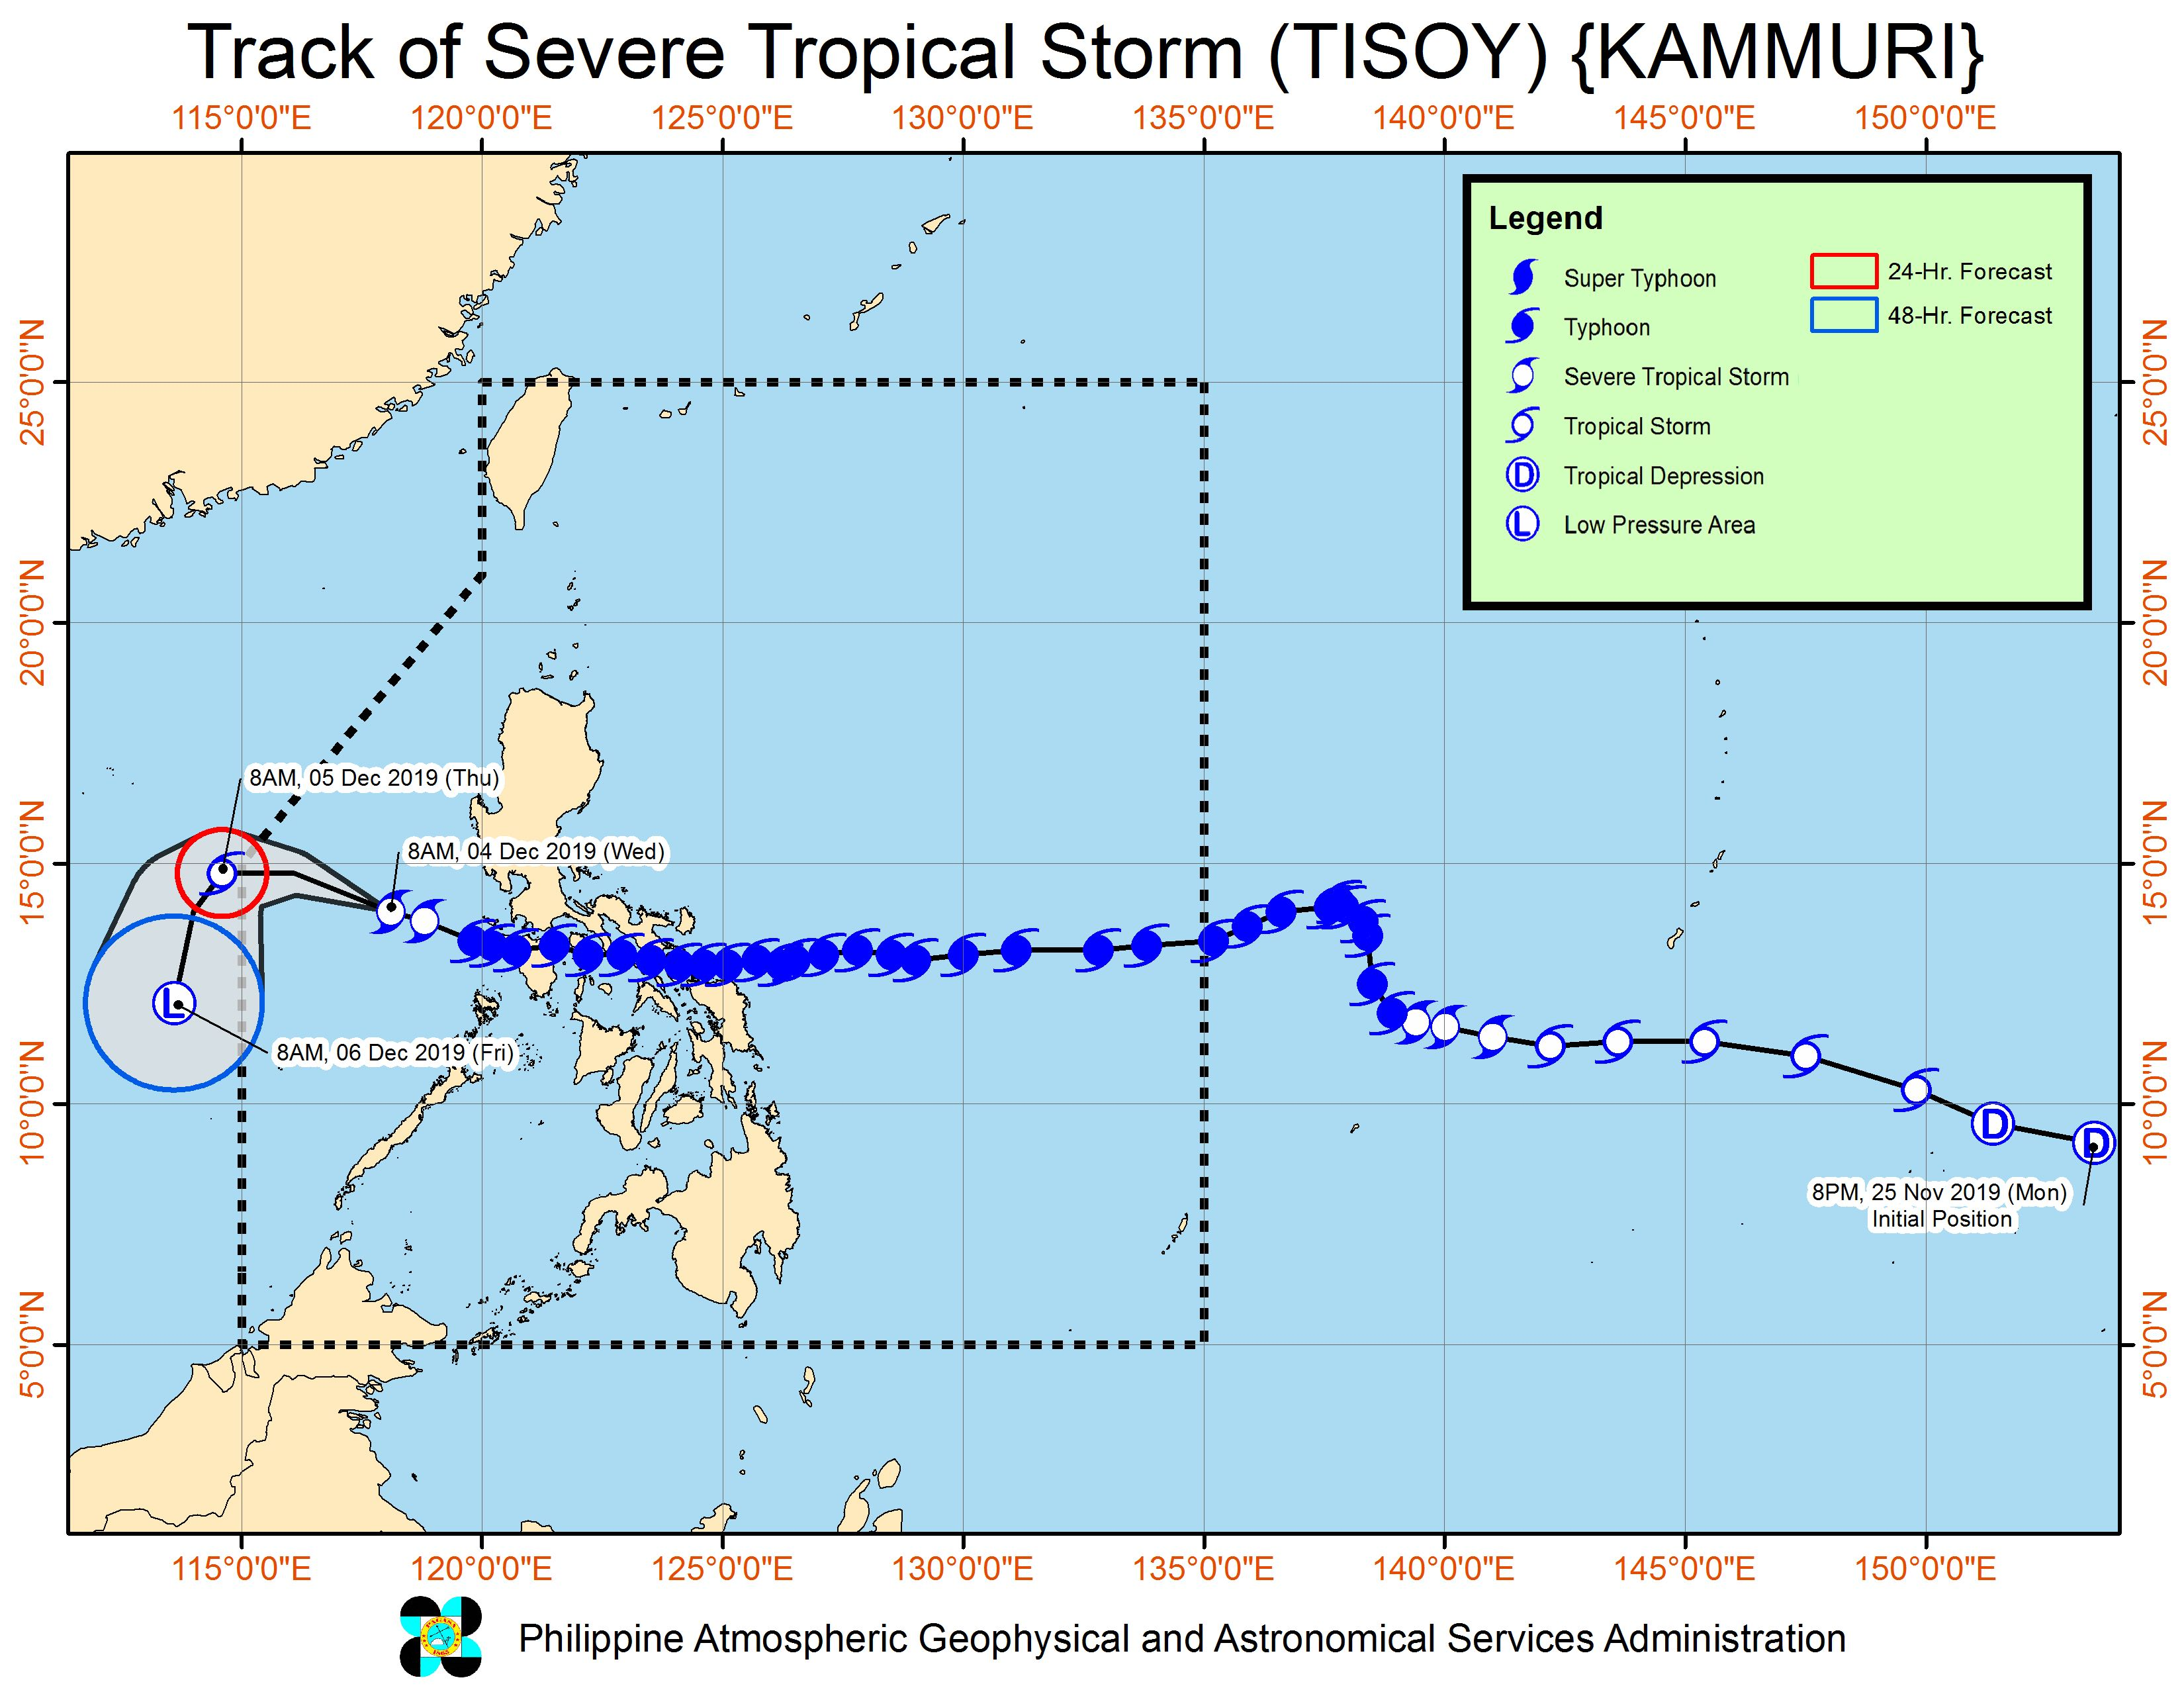 Forecast track of Severe Tropical Storm Tisoy (Kammuri) as of December 4, 2019, 11 am. Image from PAGASA